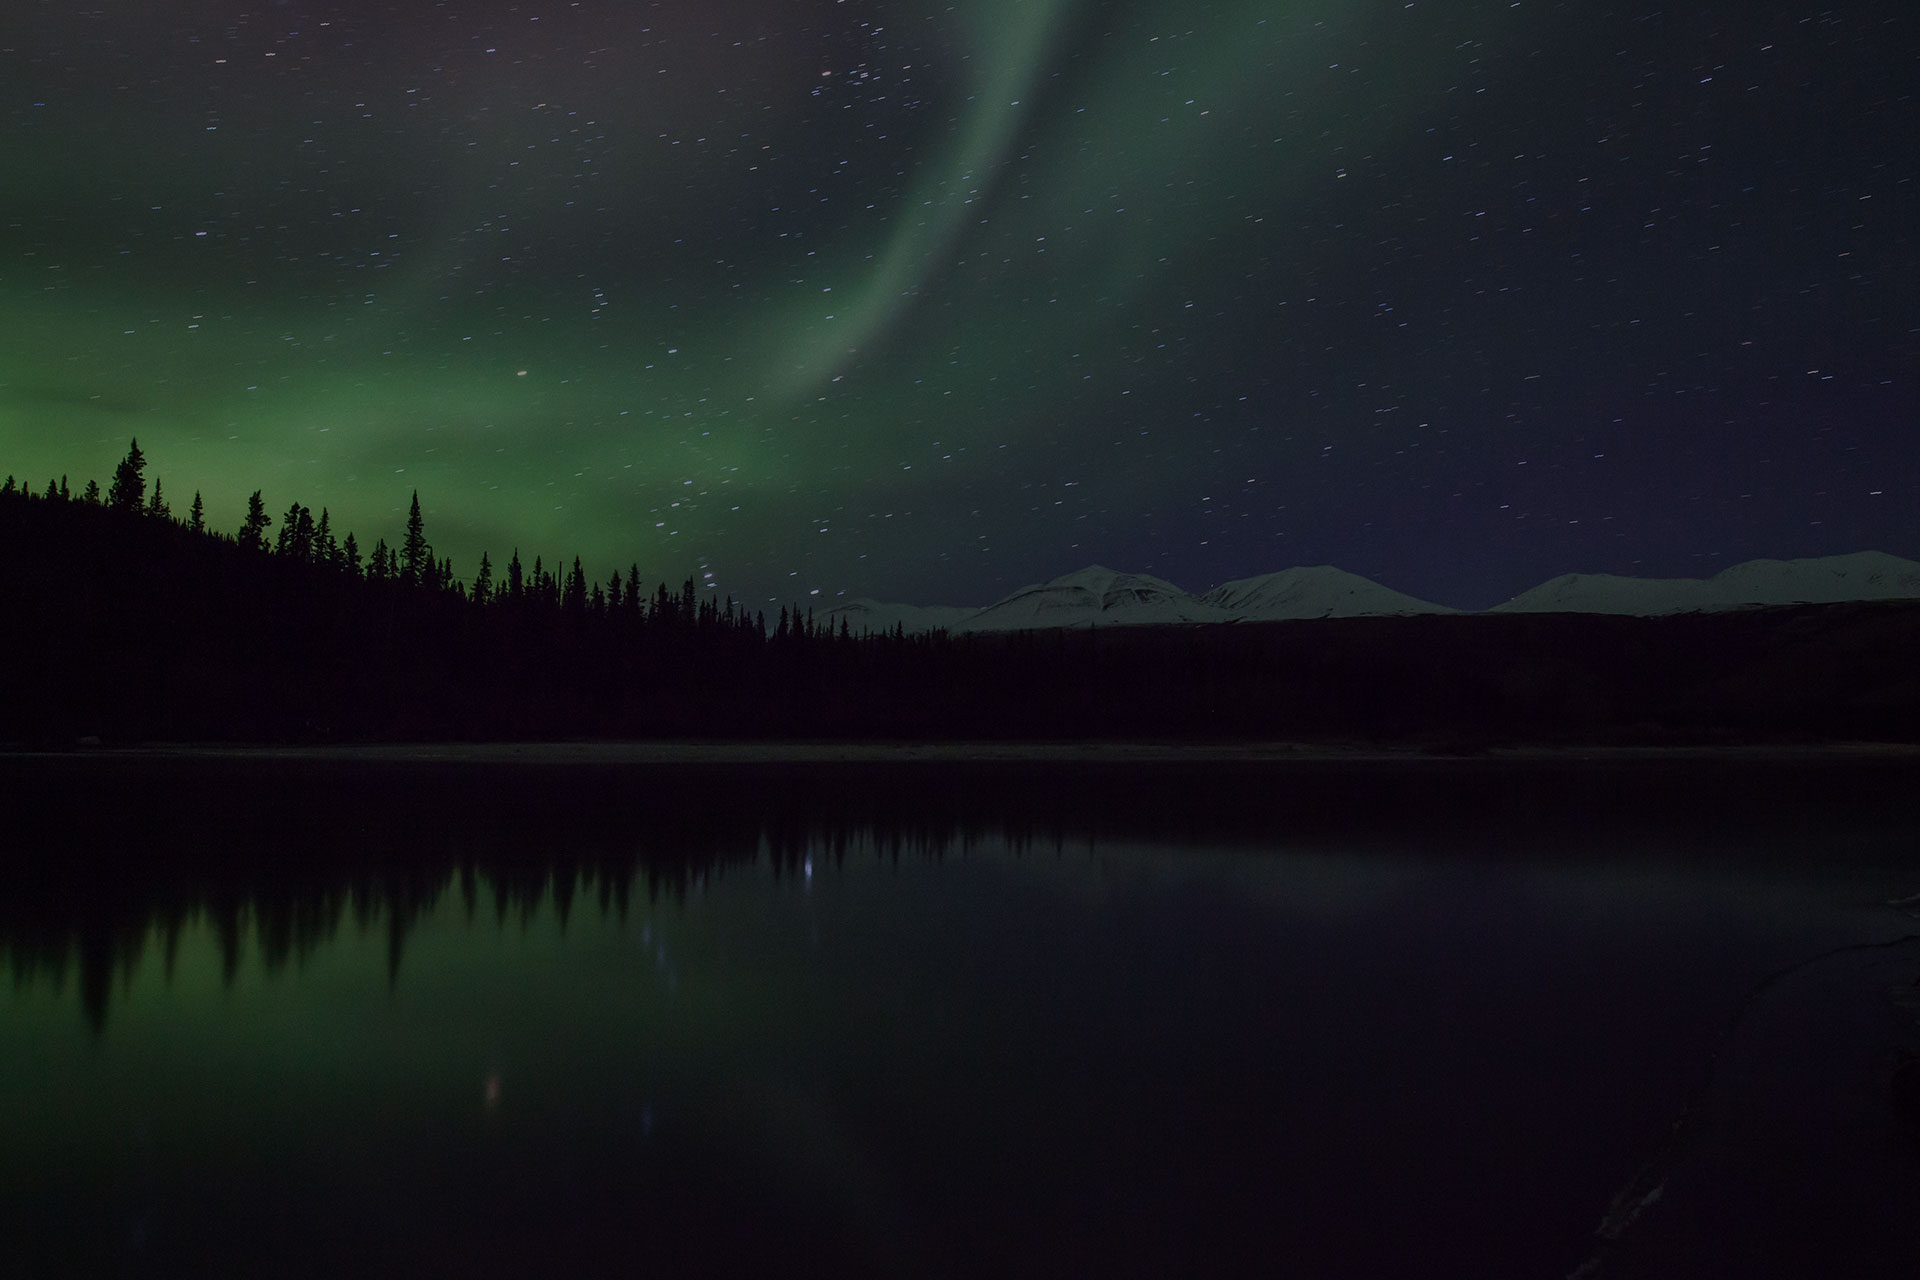 Dancing with Light A beautiful aurora show I watched in Alaska near Denali National Park